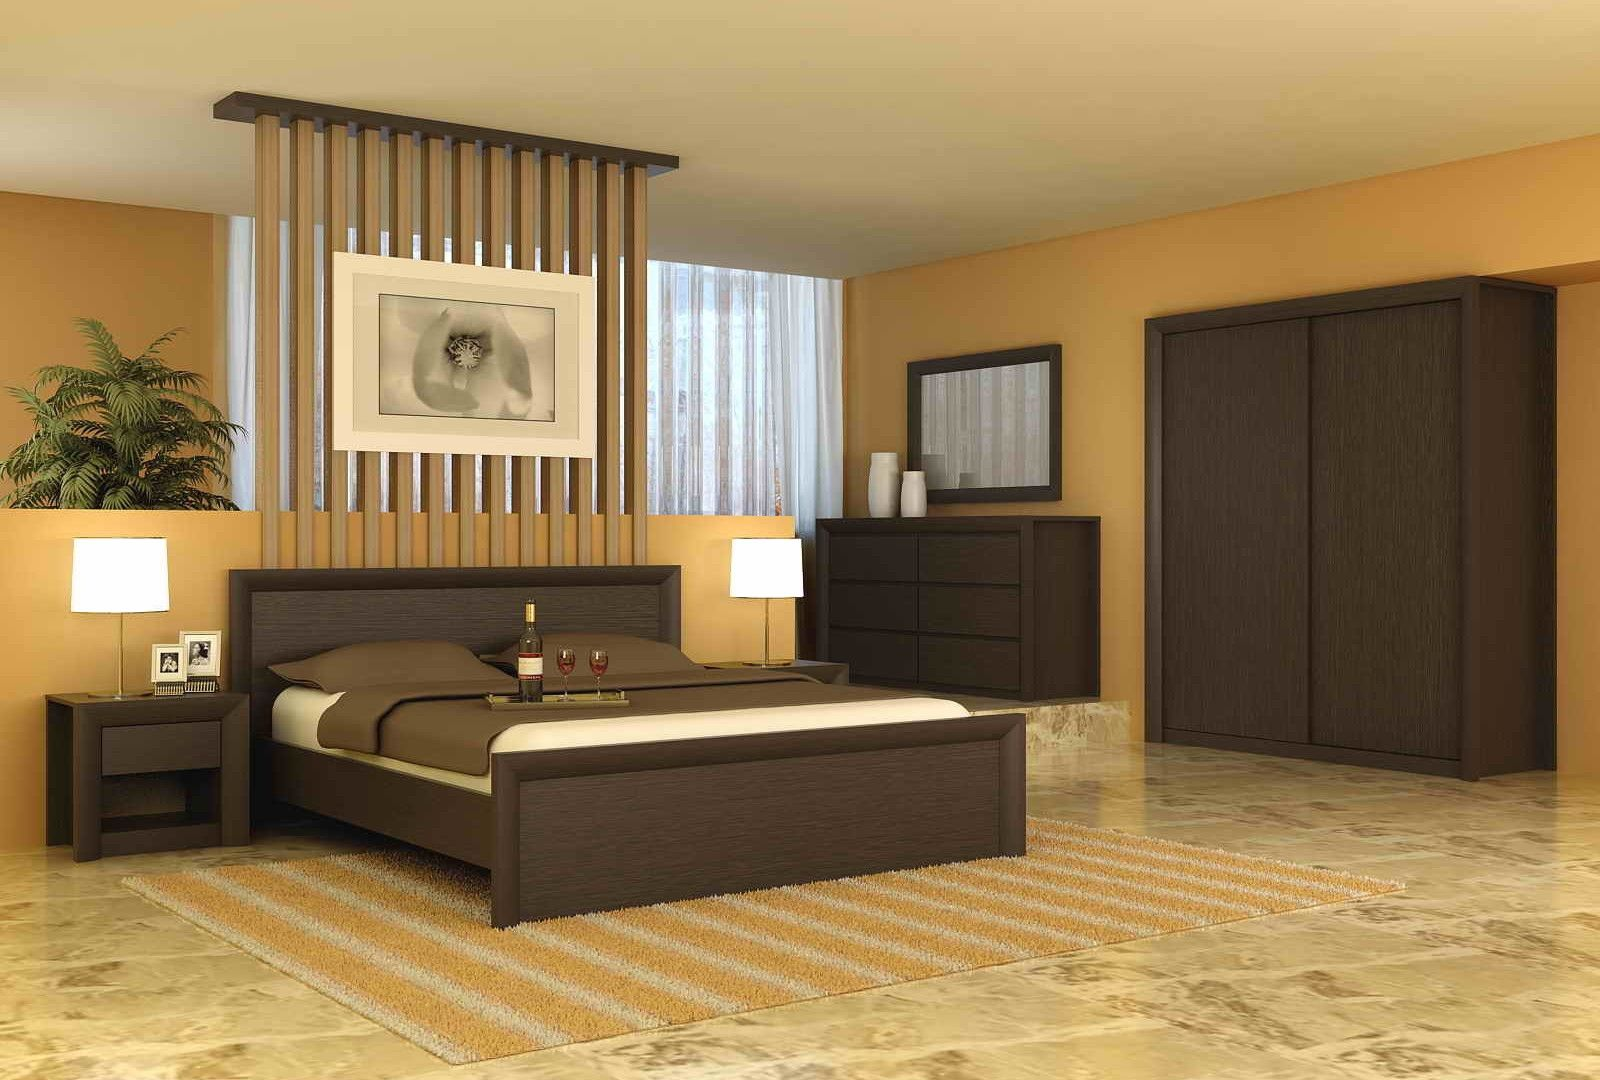 Simple Modern Bedroom Simple Bedroom Wall Wardrobe Design Simple Modern Bedroom